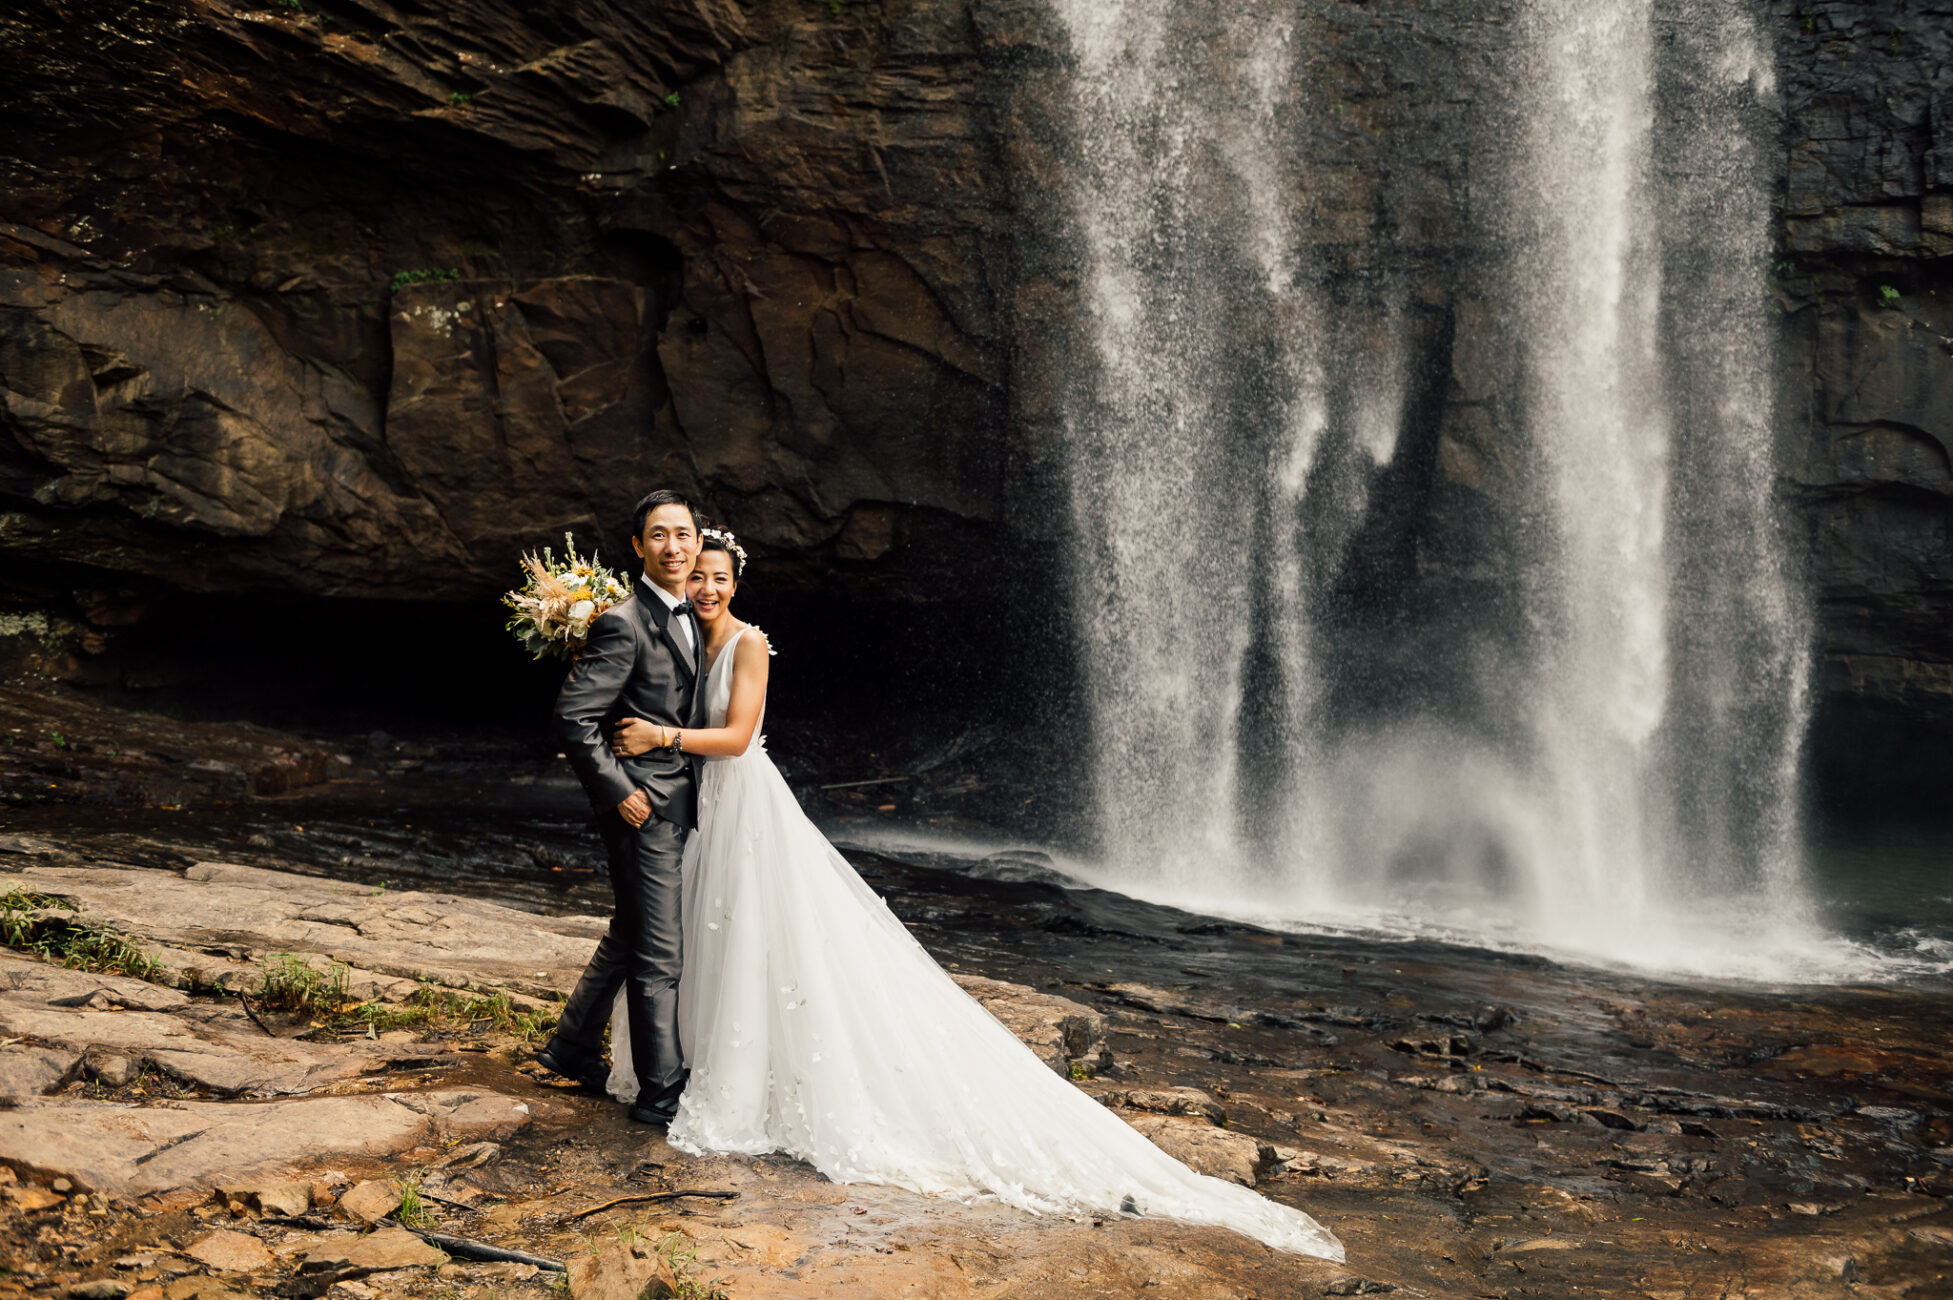 Bride and Groom pose for pictures at Lula Lake waterfall in Chattanooga